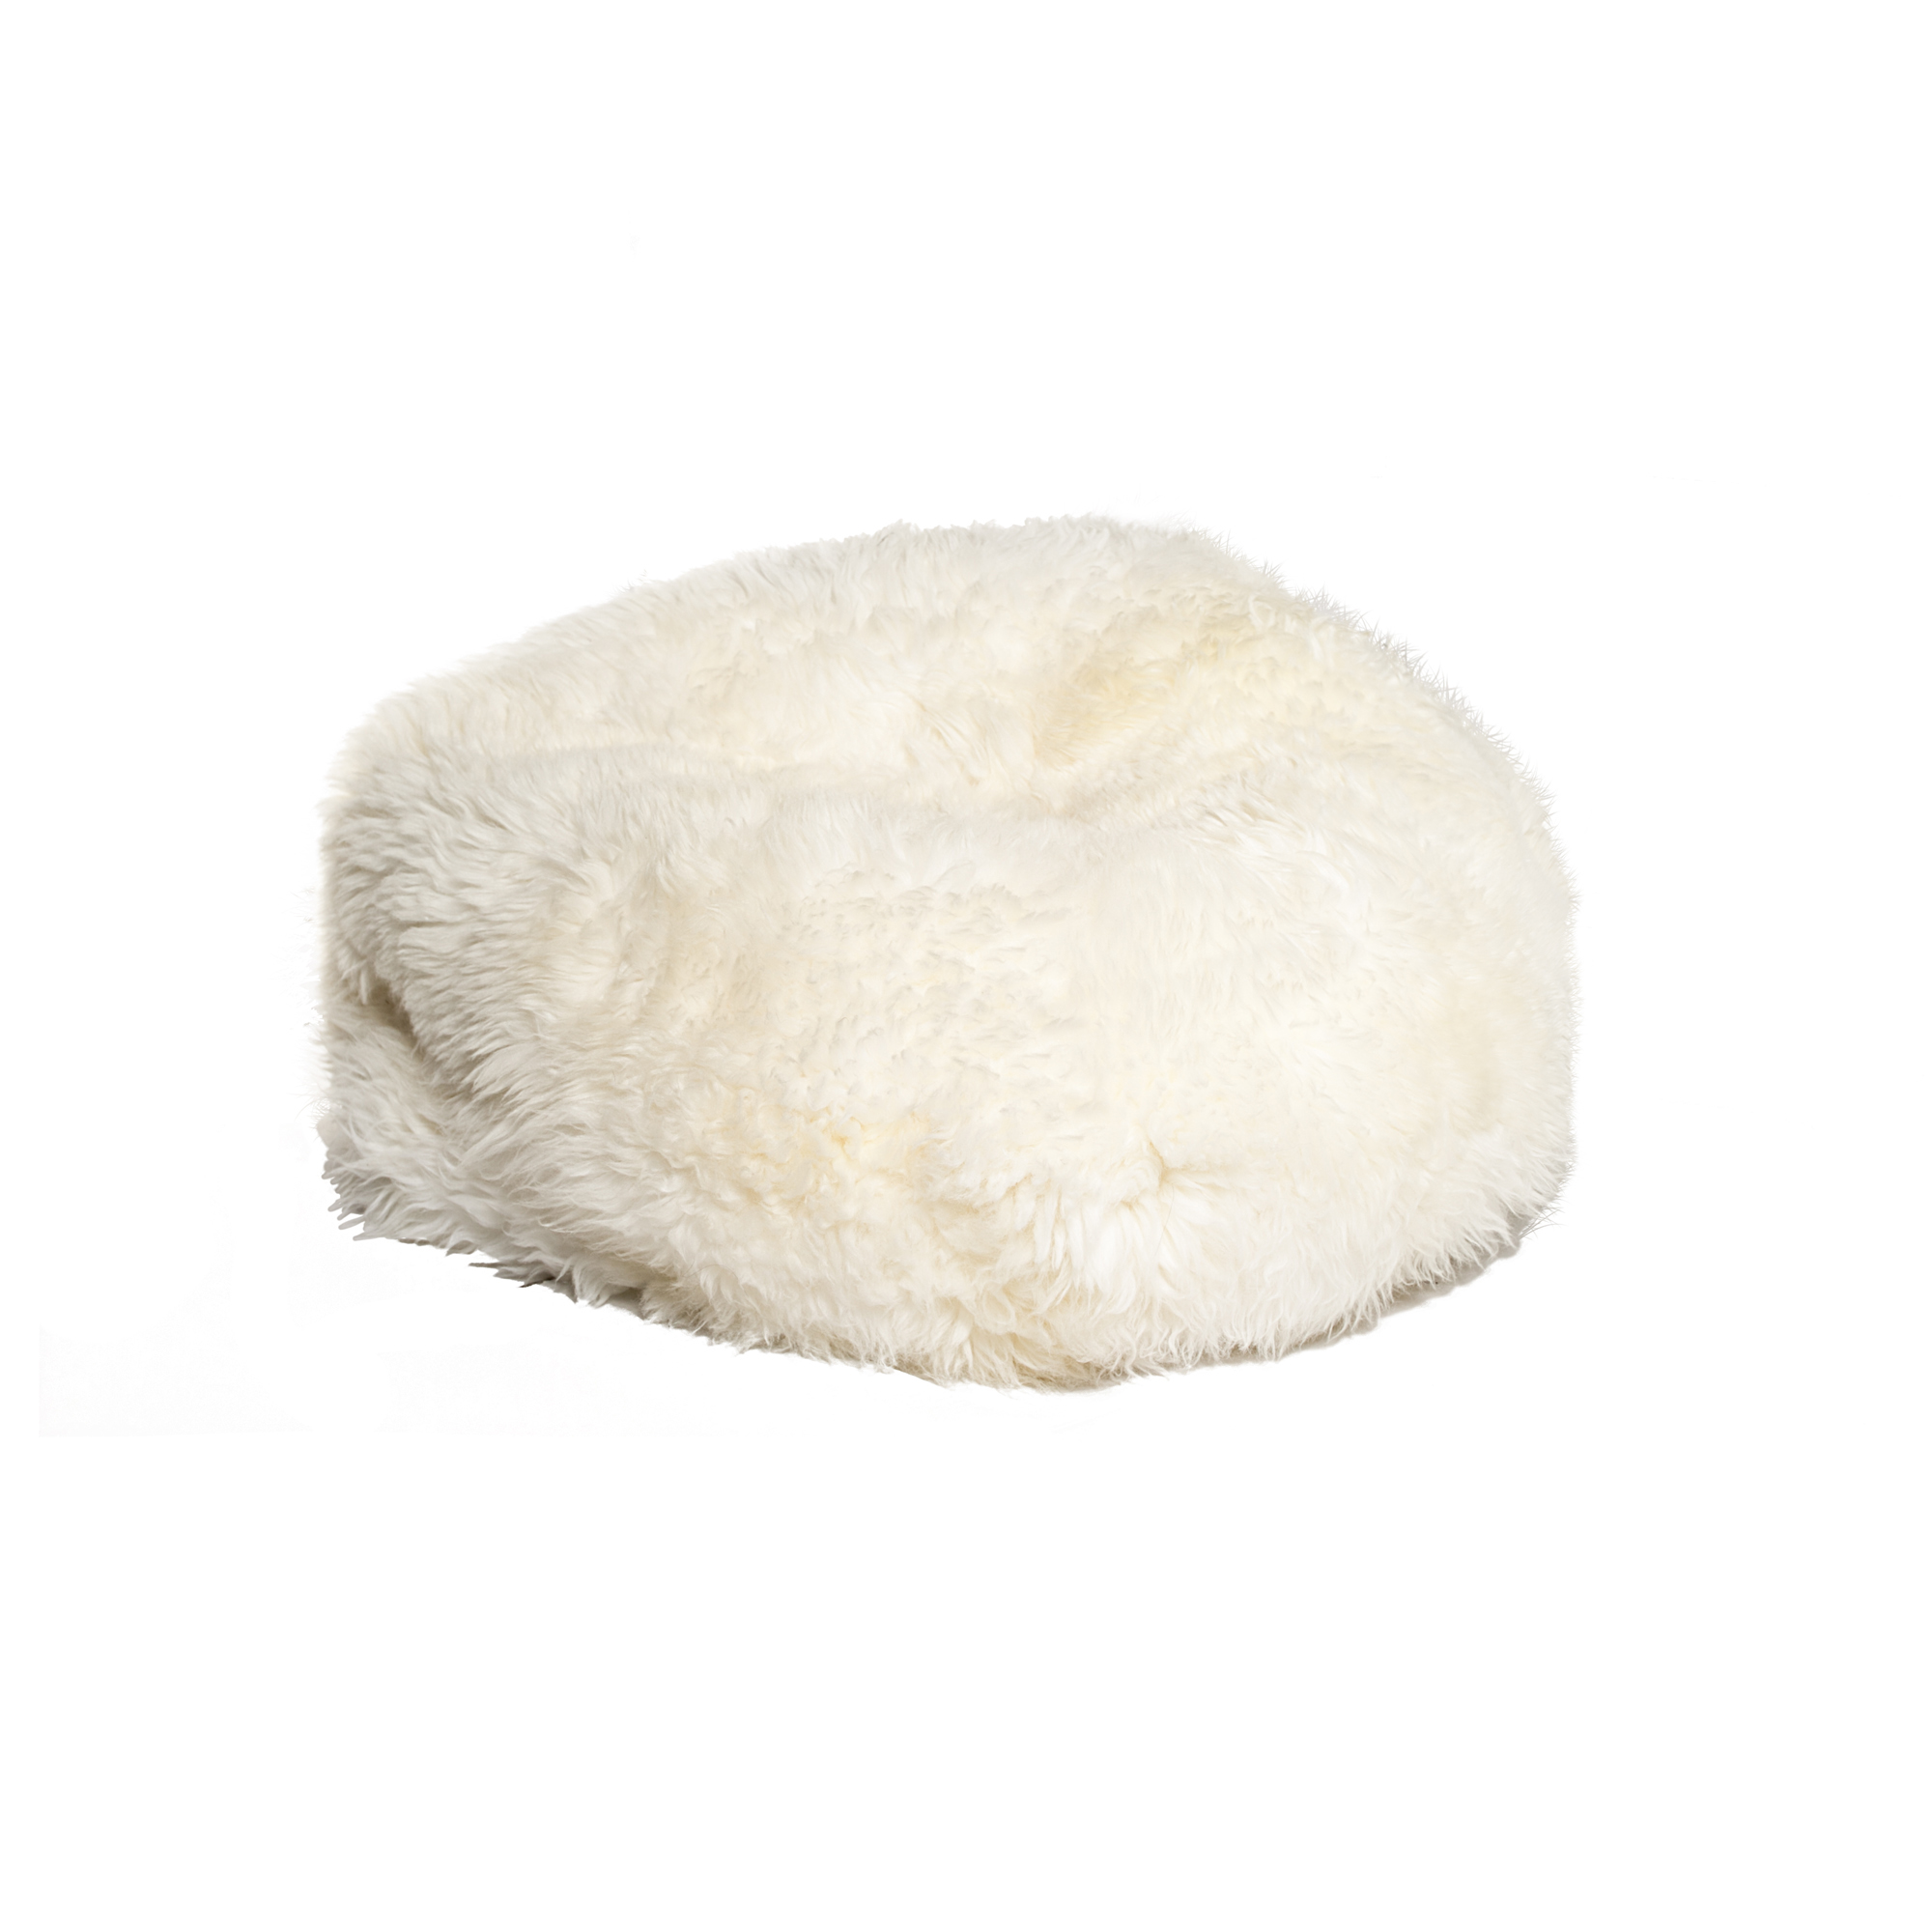 "31"" x 31"" x 31"" White Short-Hair Sheepskin Bean Bag"